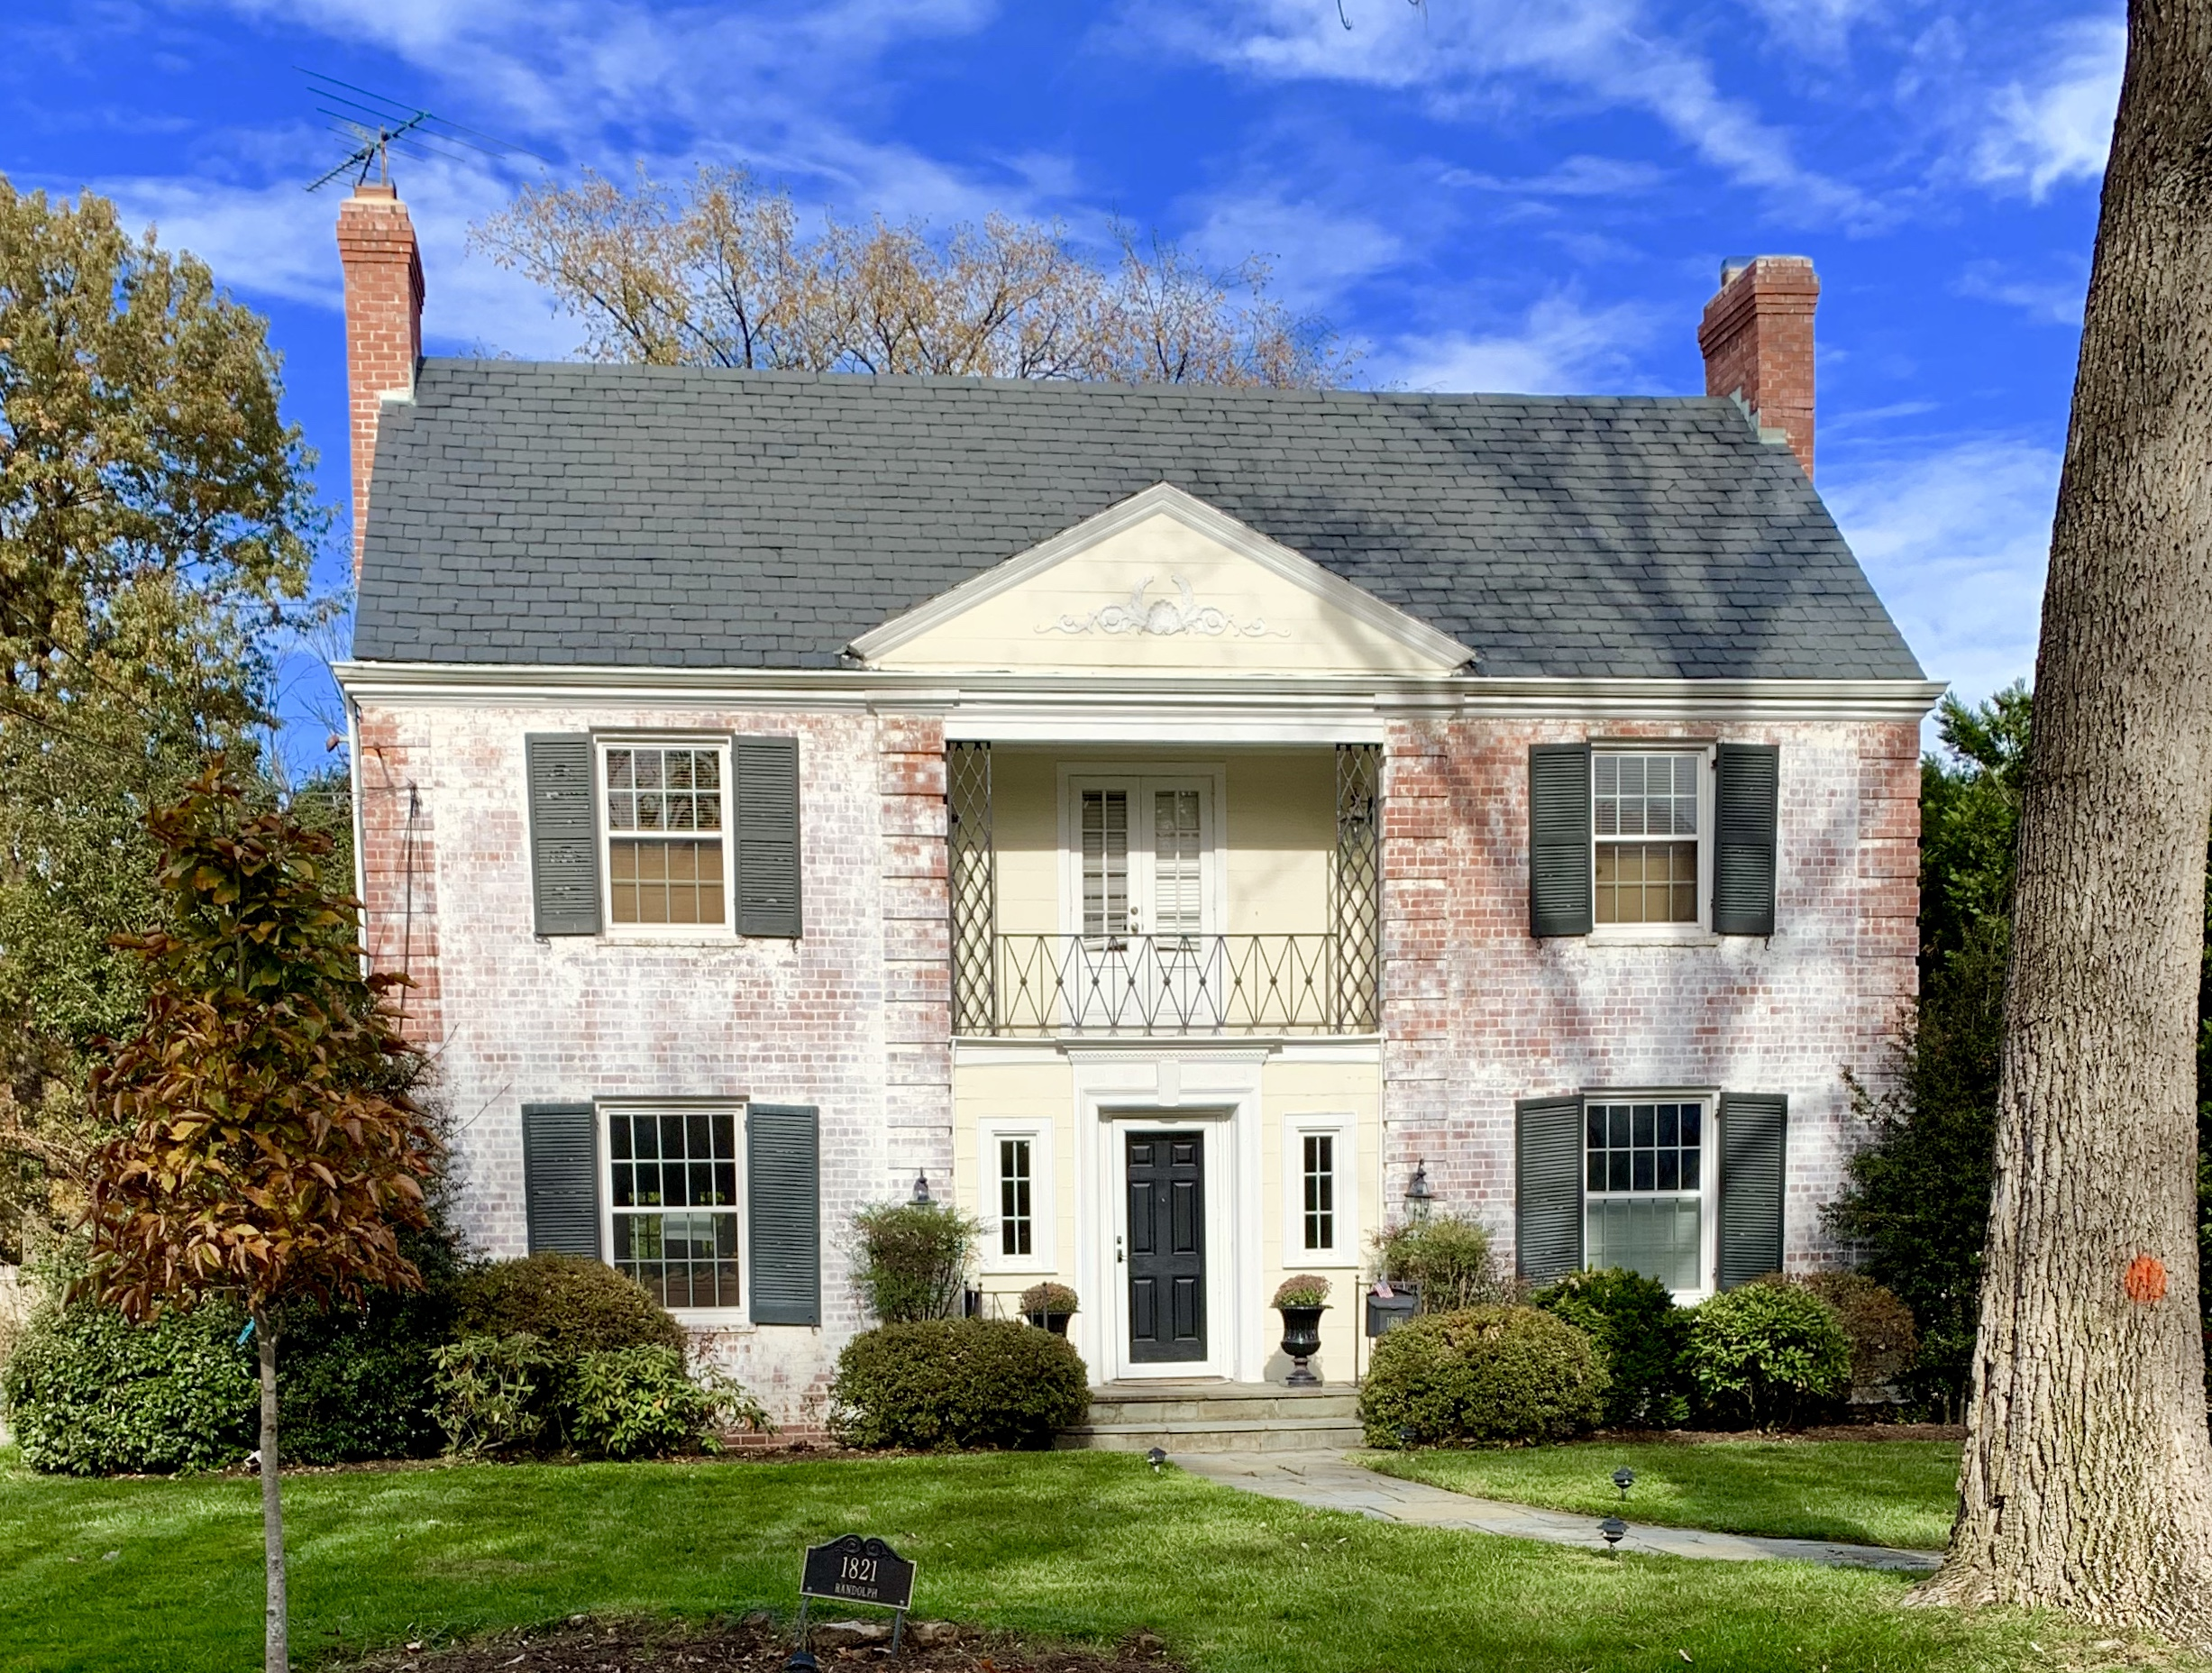 Washington, DC Detached Homes For Sale. Randolph St in Crestwood. Art Shmatko Luxury Real Estate Agent